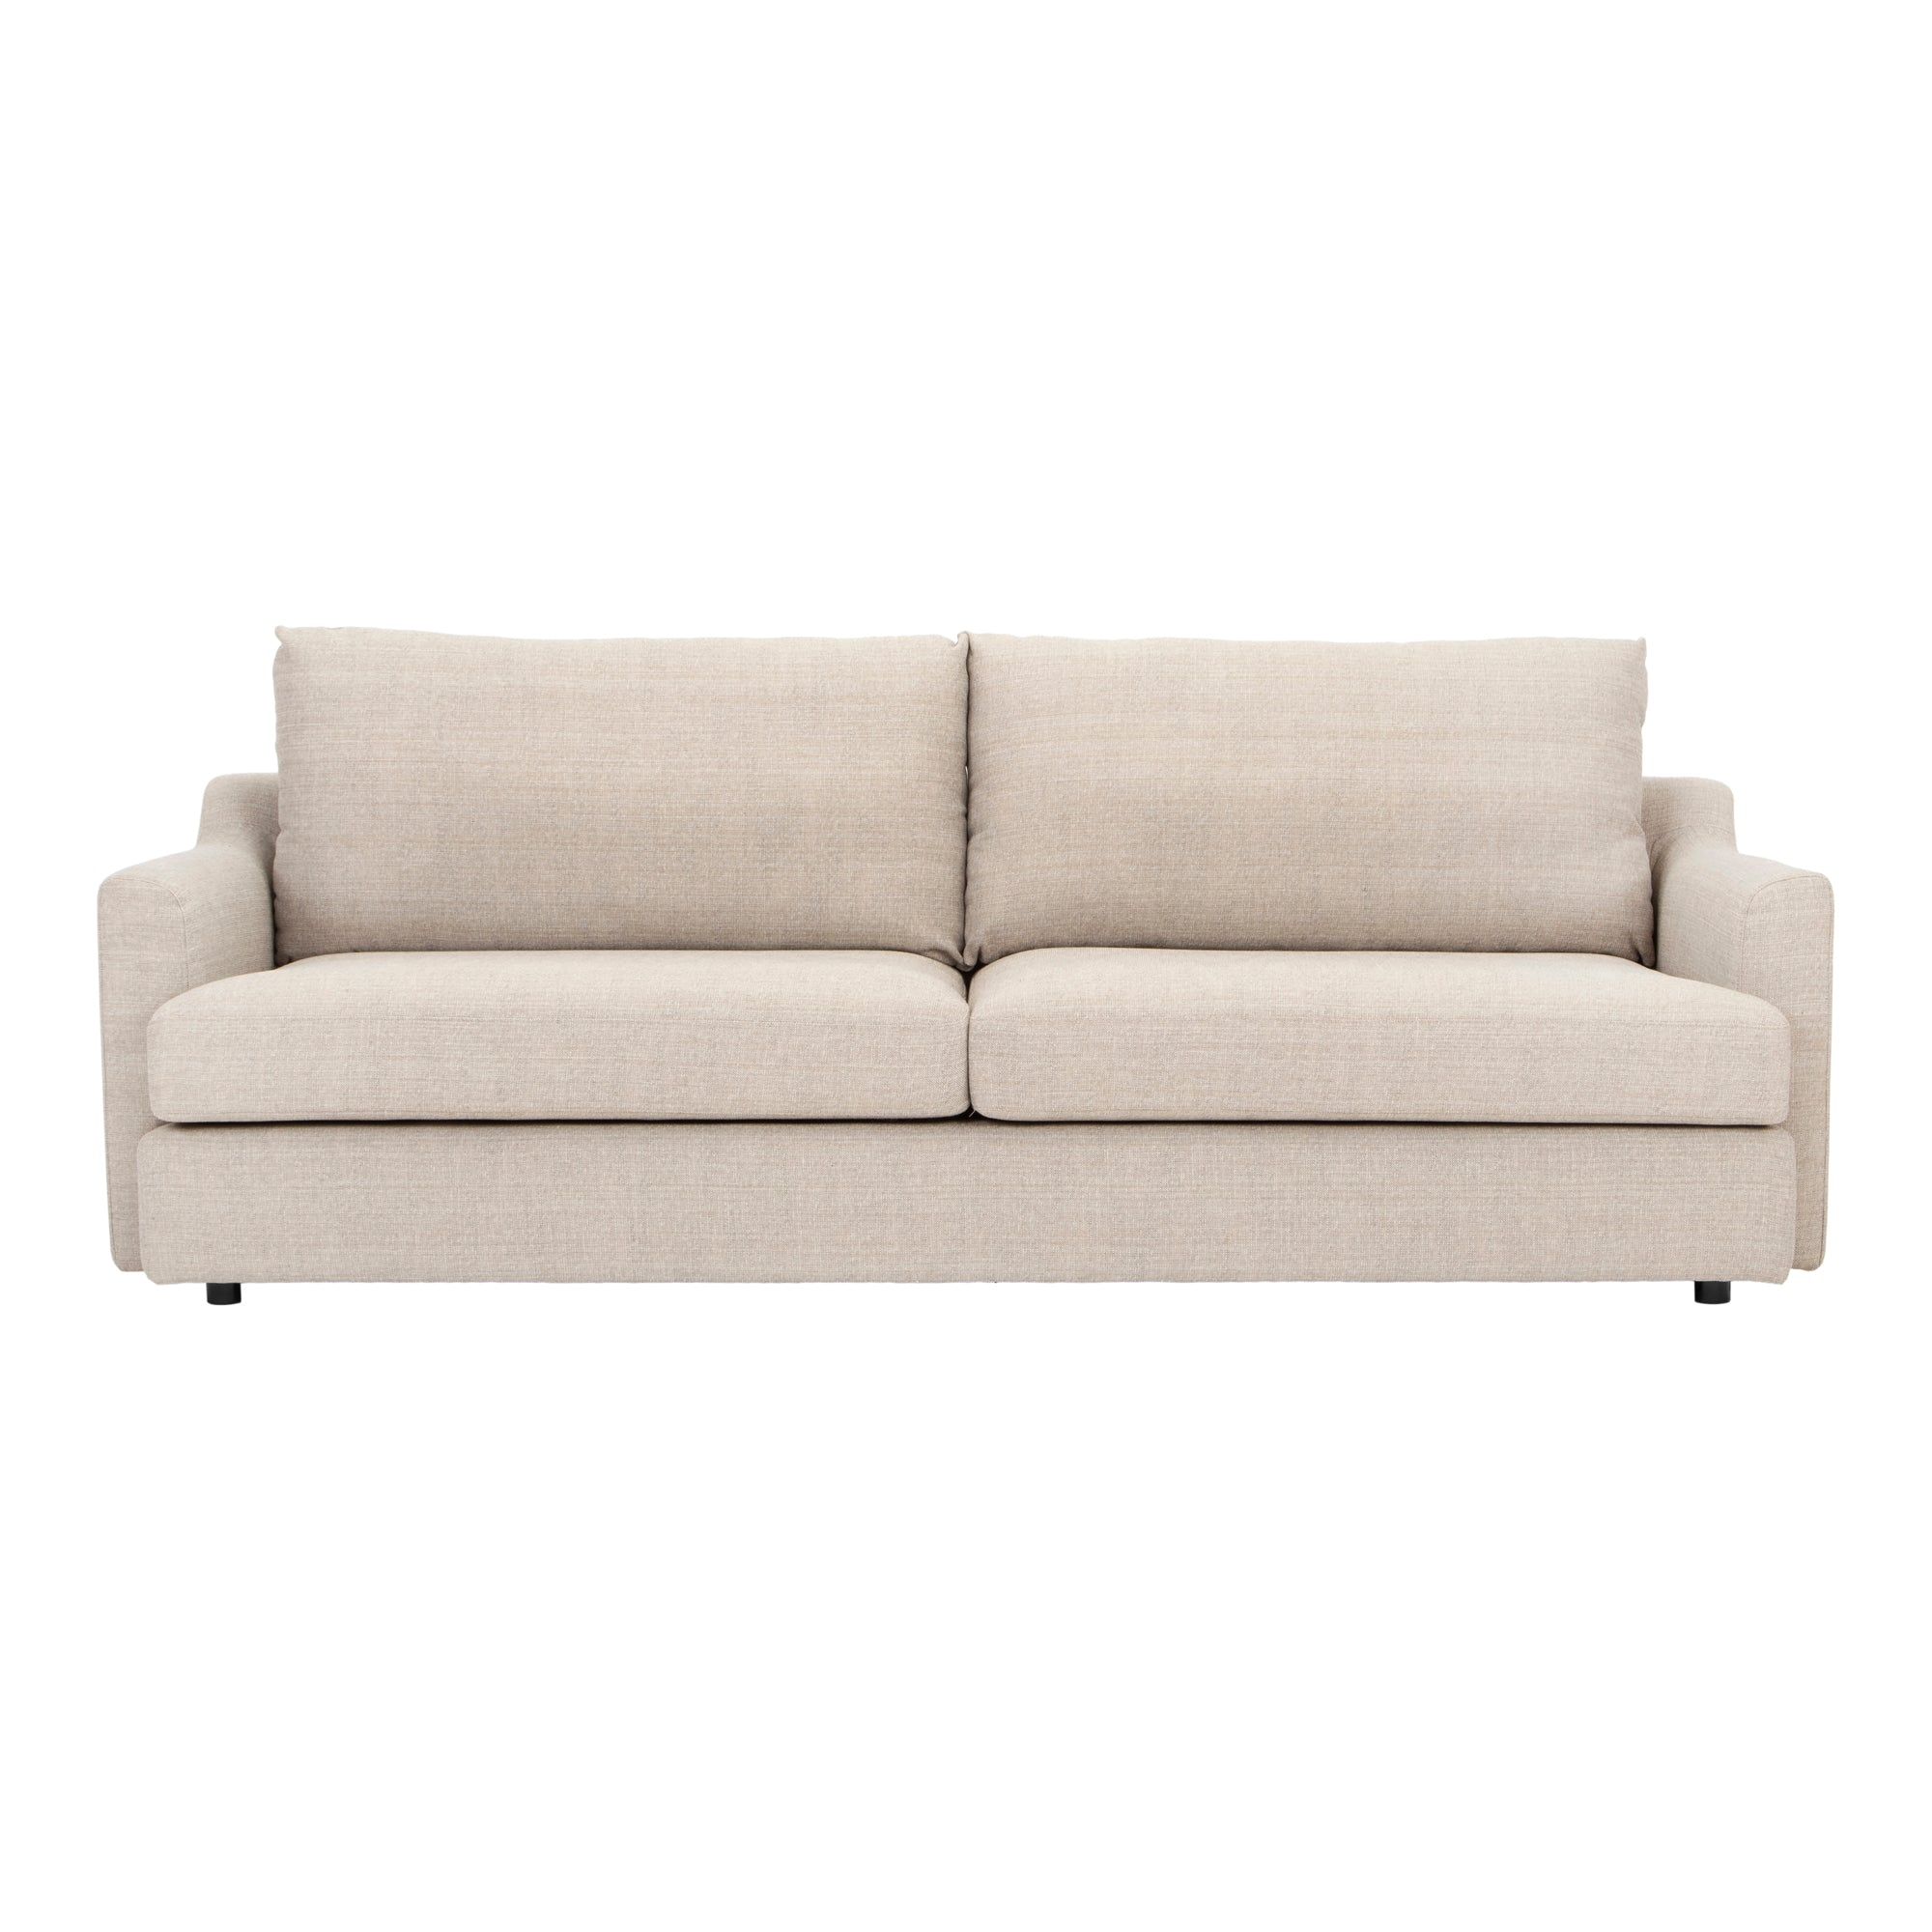 ALVIN SOFA, Beige - Tops-Dress